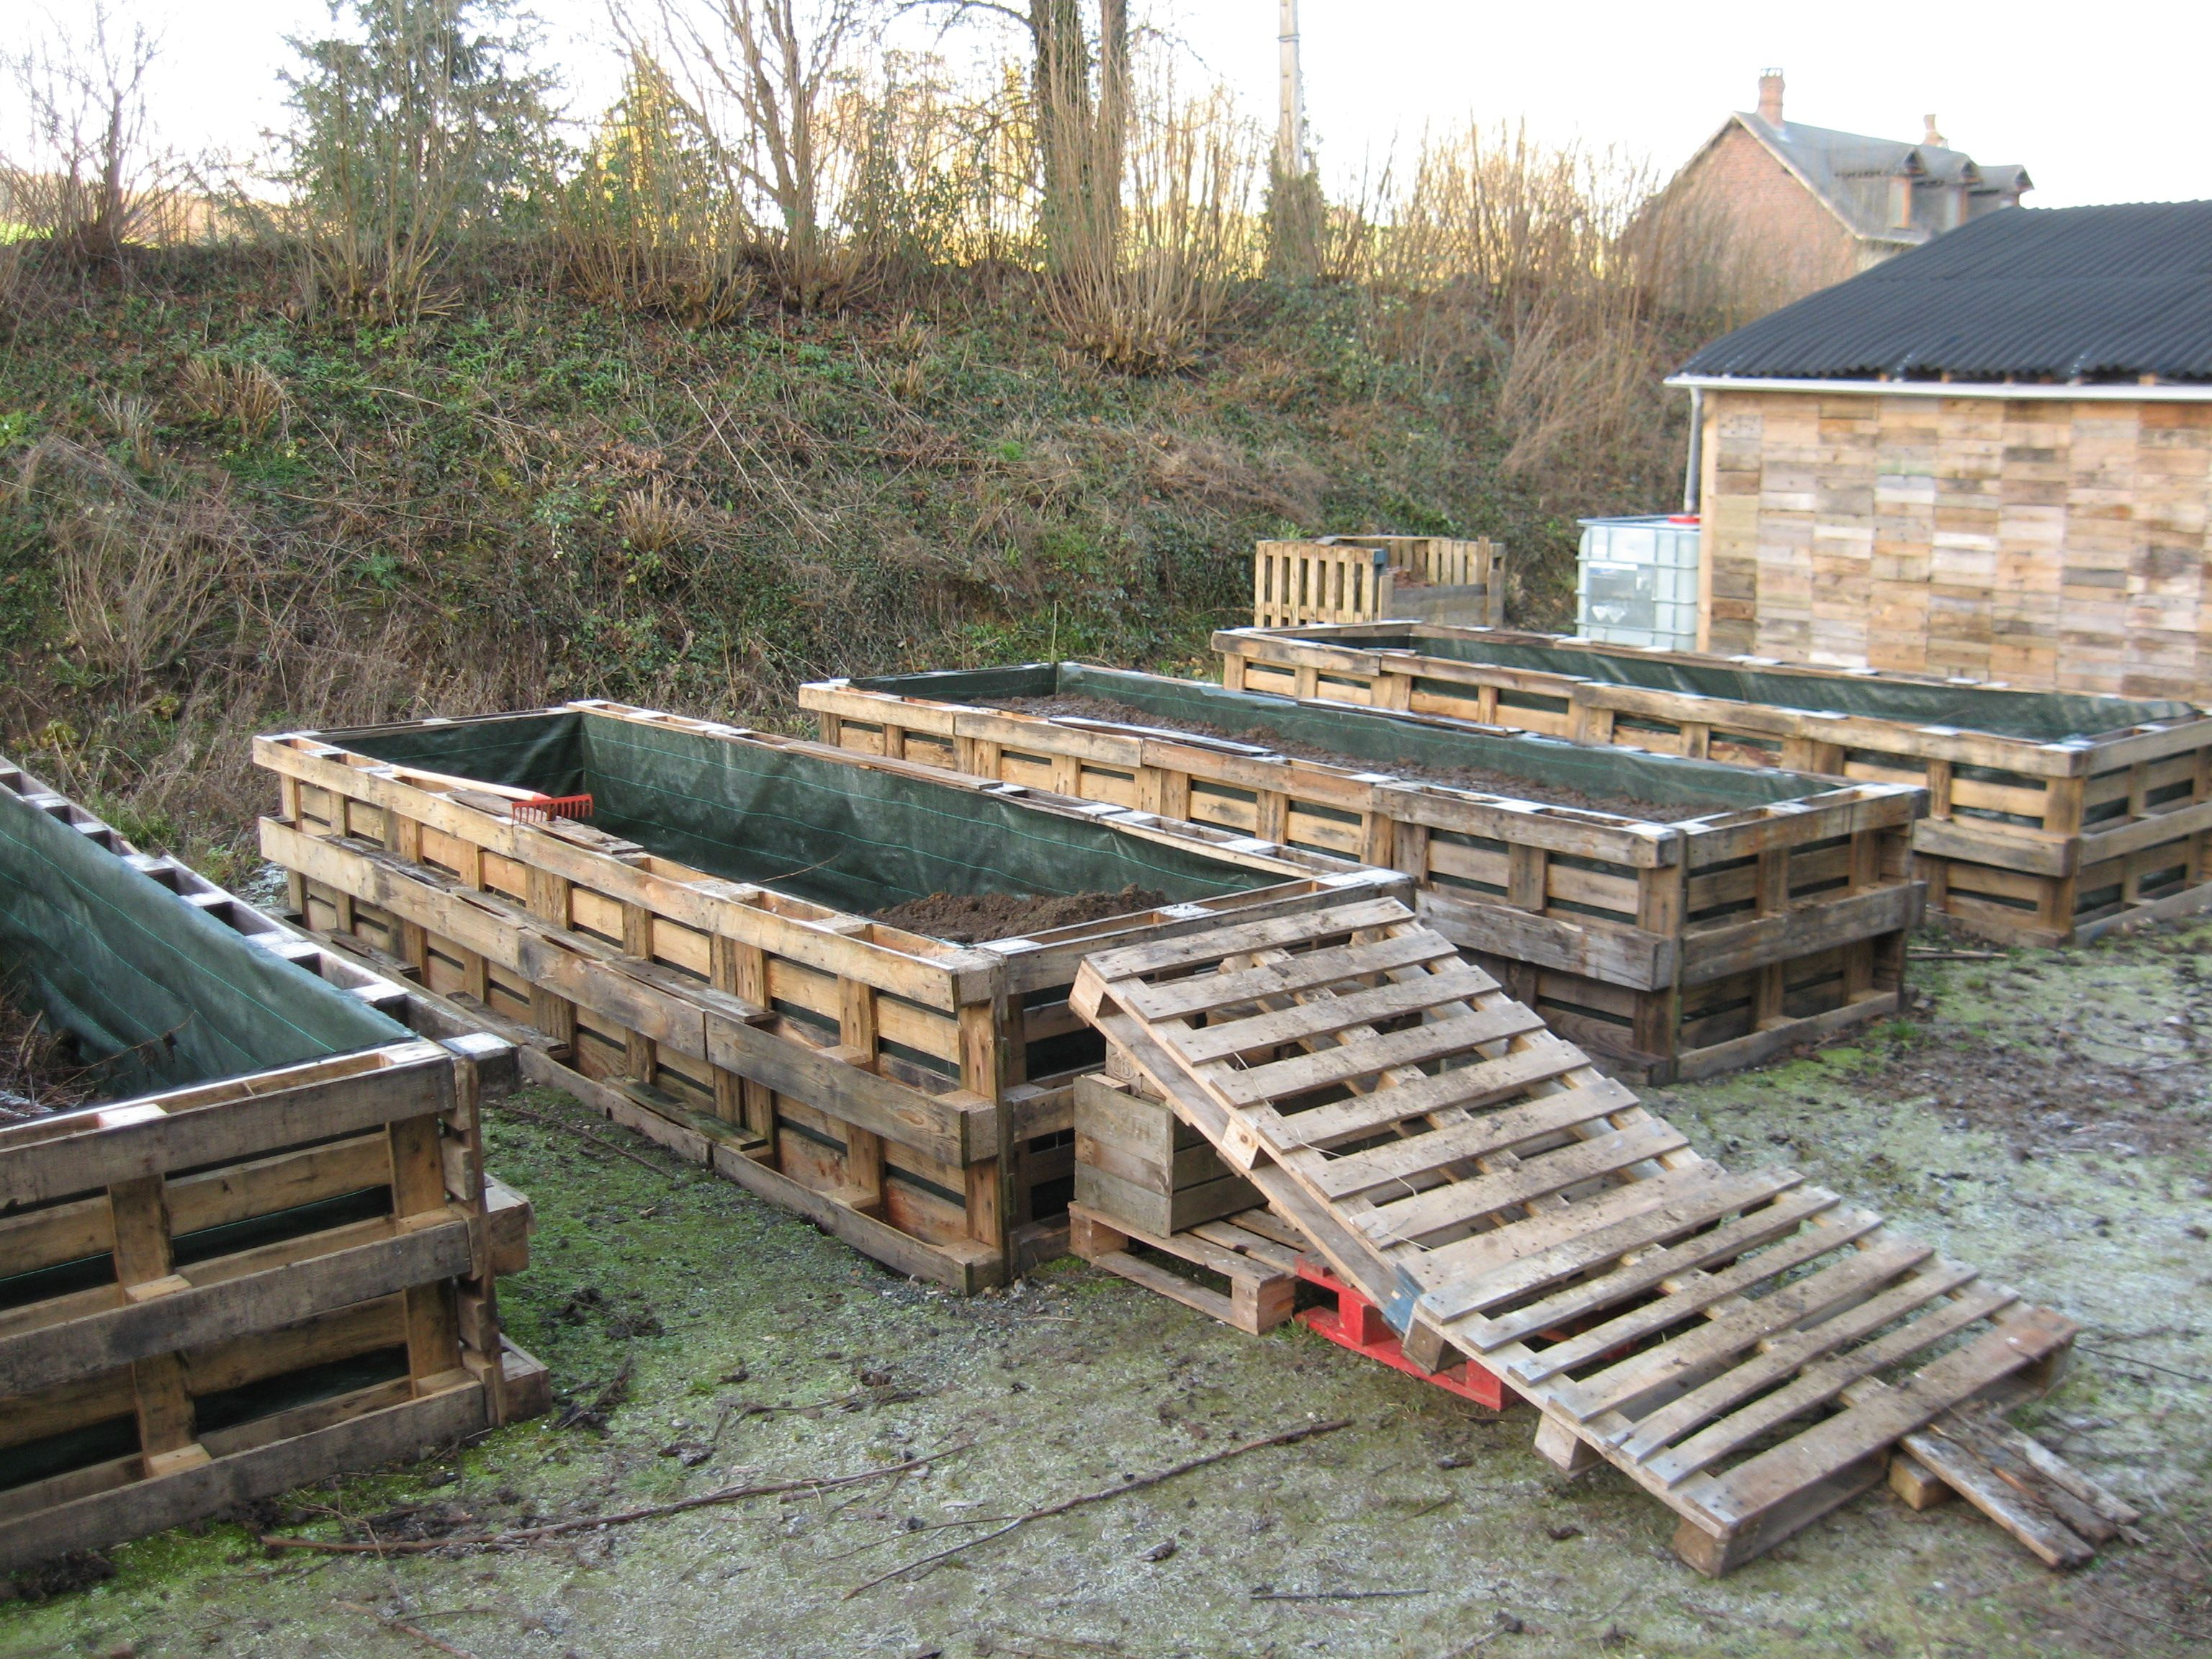 Used Pallets Used To Make A Raised Garden Pallets Garden Garden